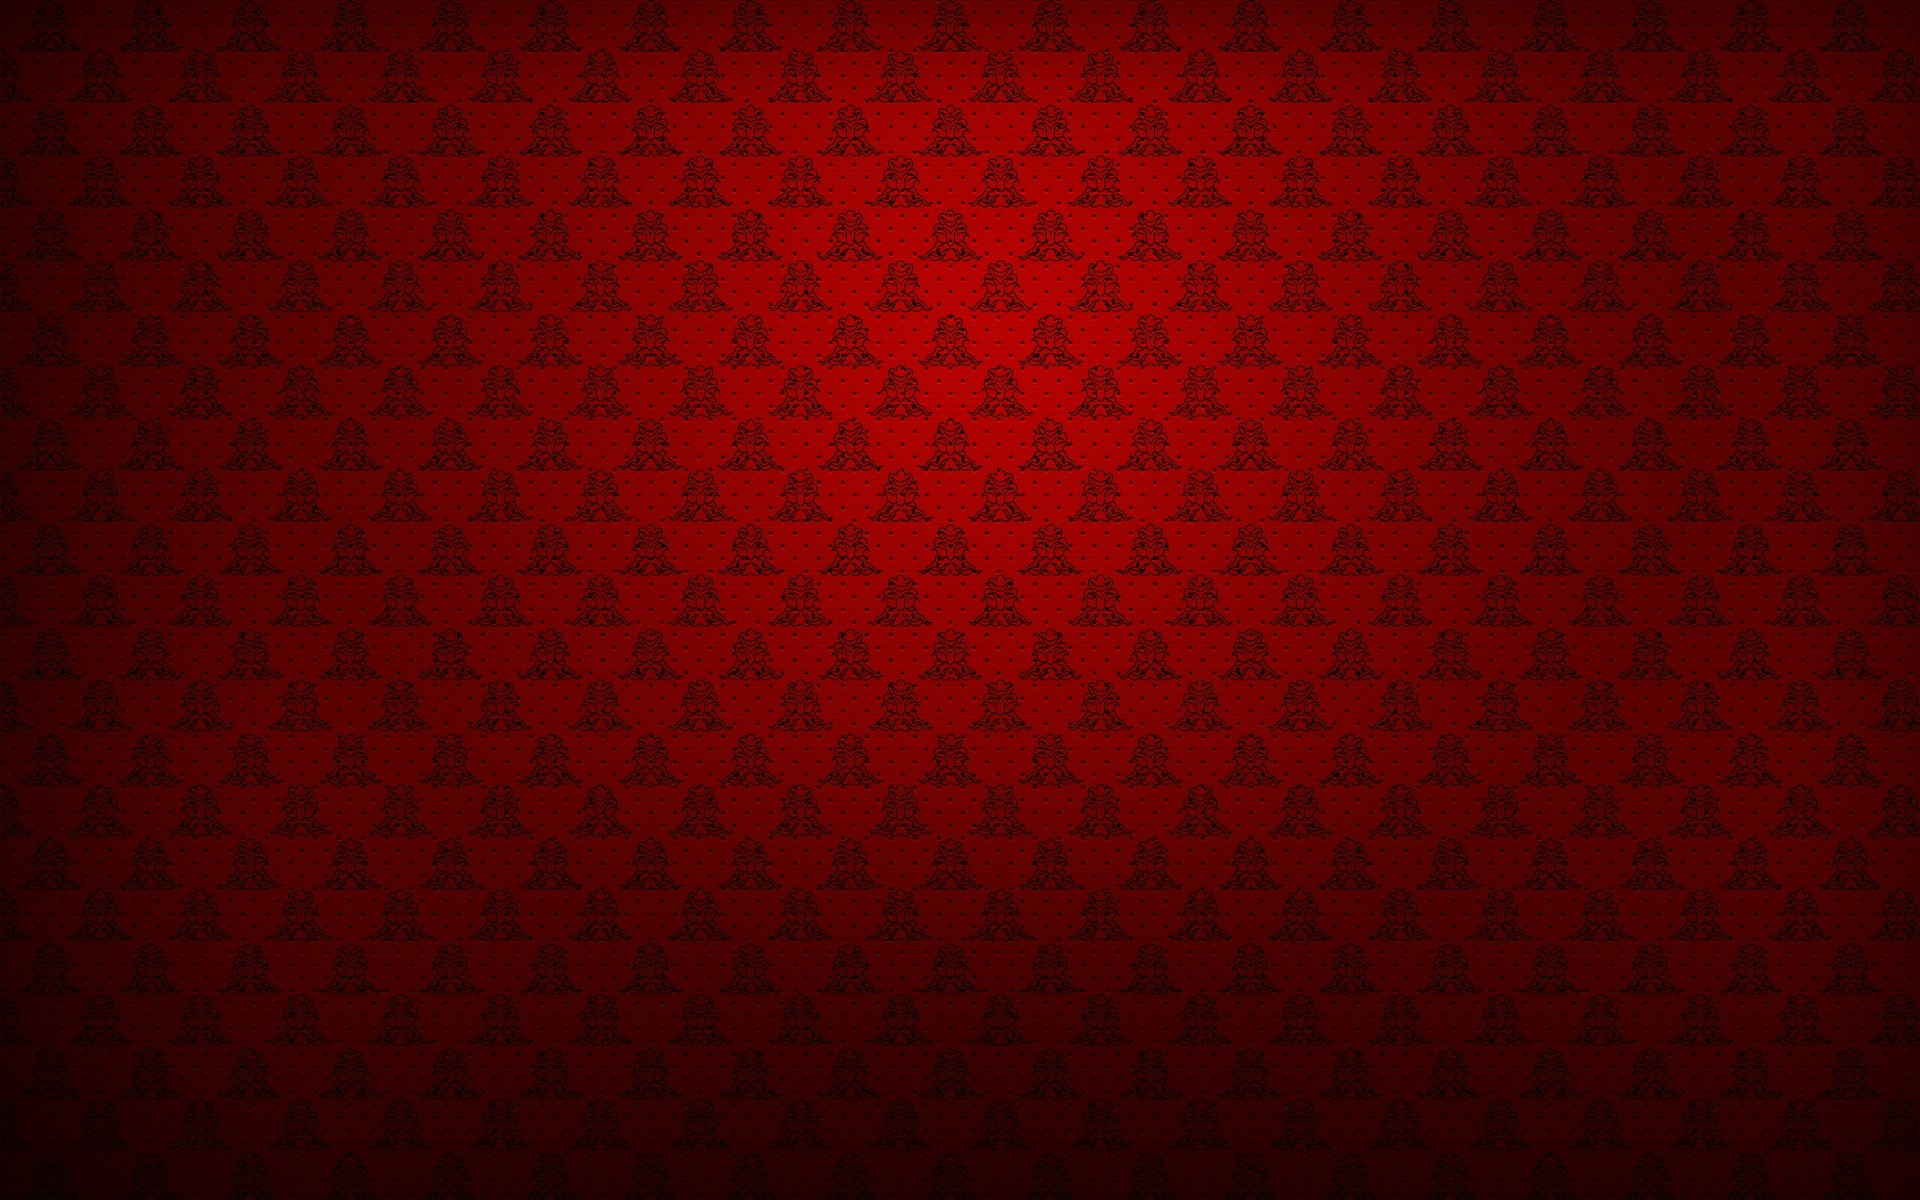 Red Abstraction Background Pattern 609.08 Kb